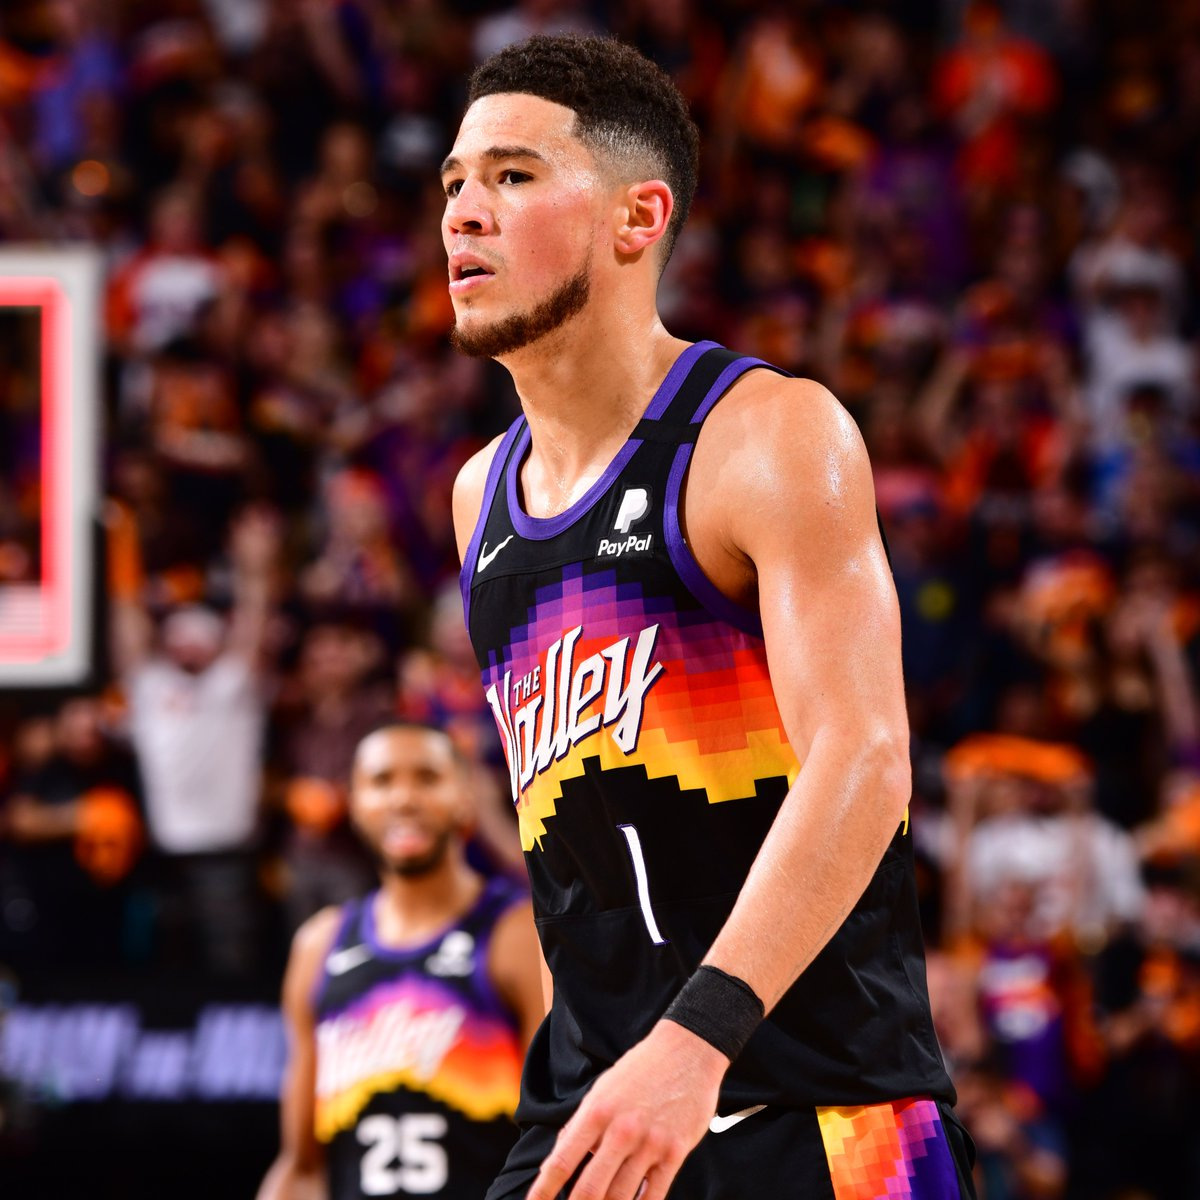 Devin Booker is the first @Suns player to record a triple-double in the #NBAPlayoffs since Steve Nash in May of 2005. https://t.co/tEn6qlpbK7